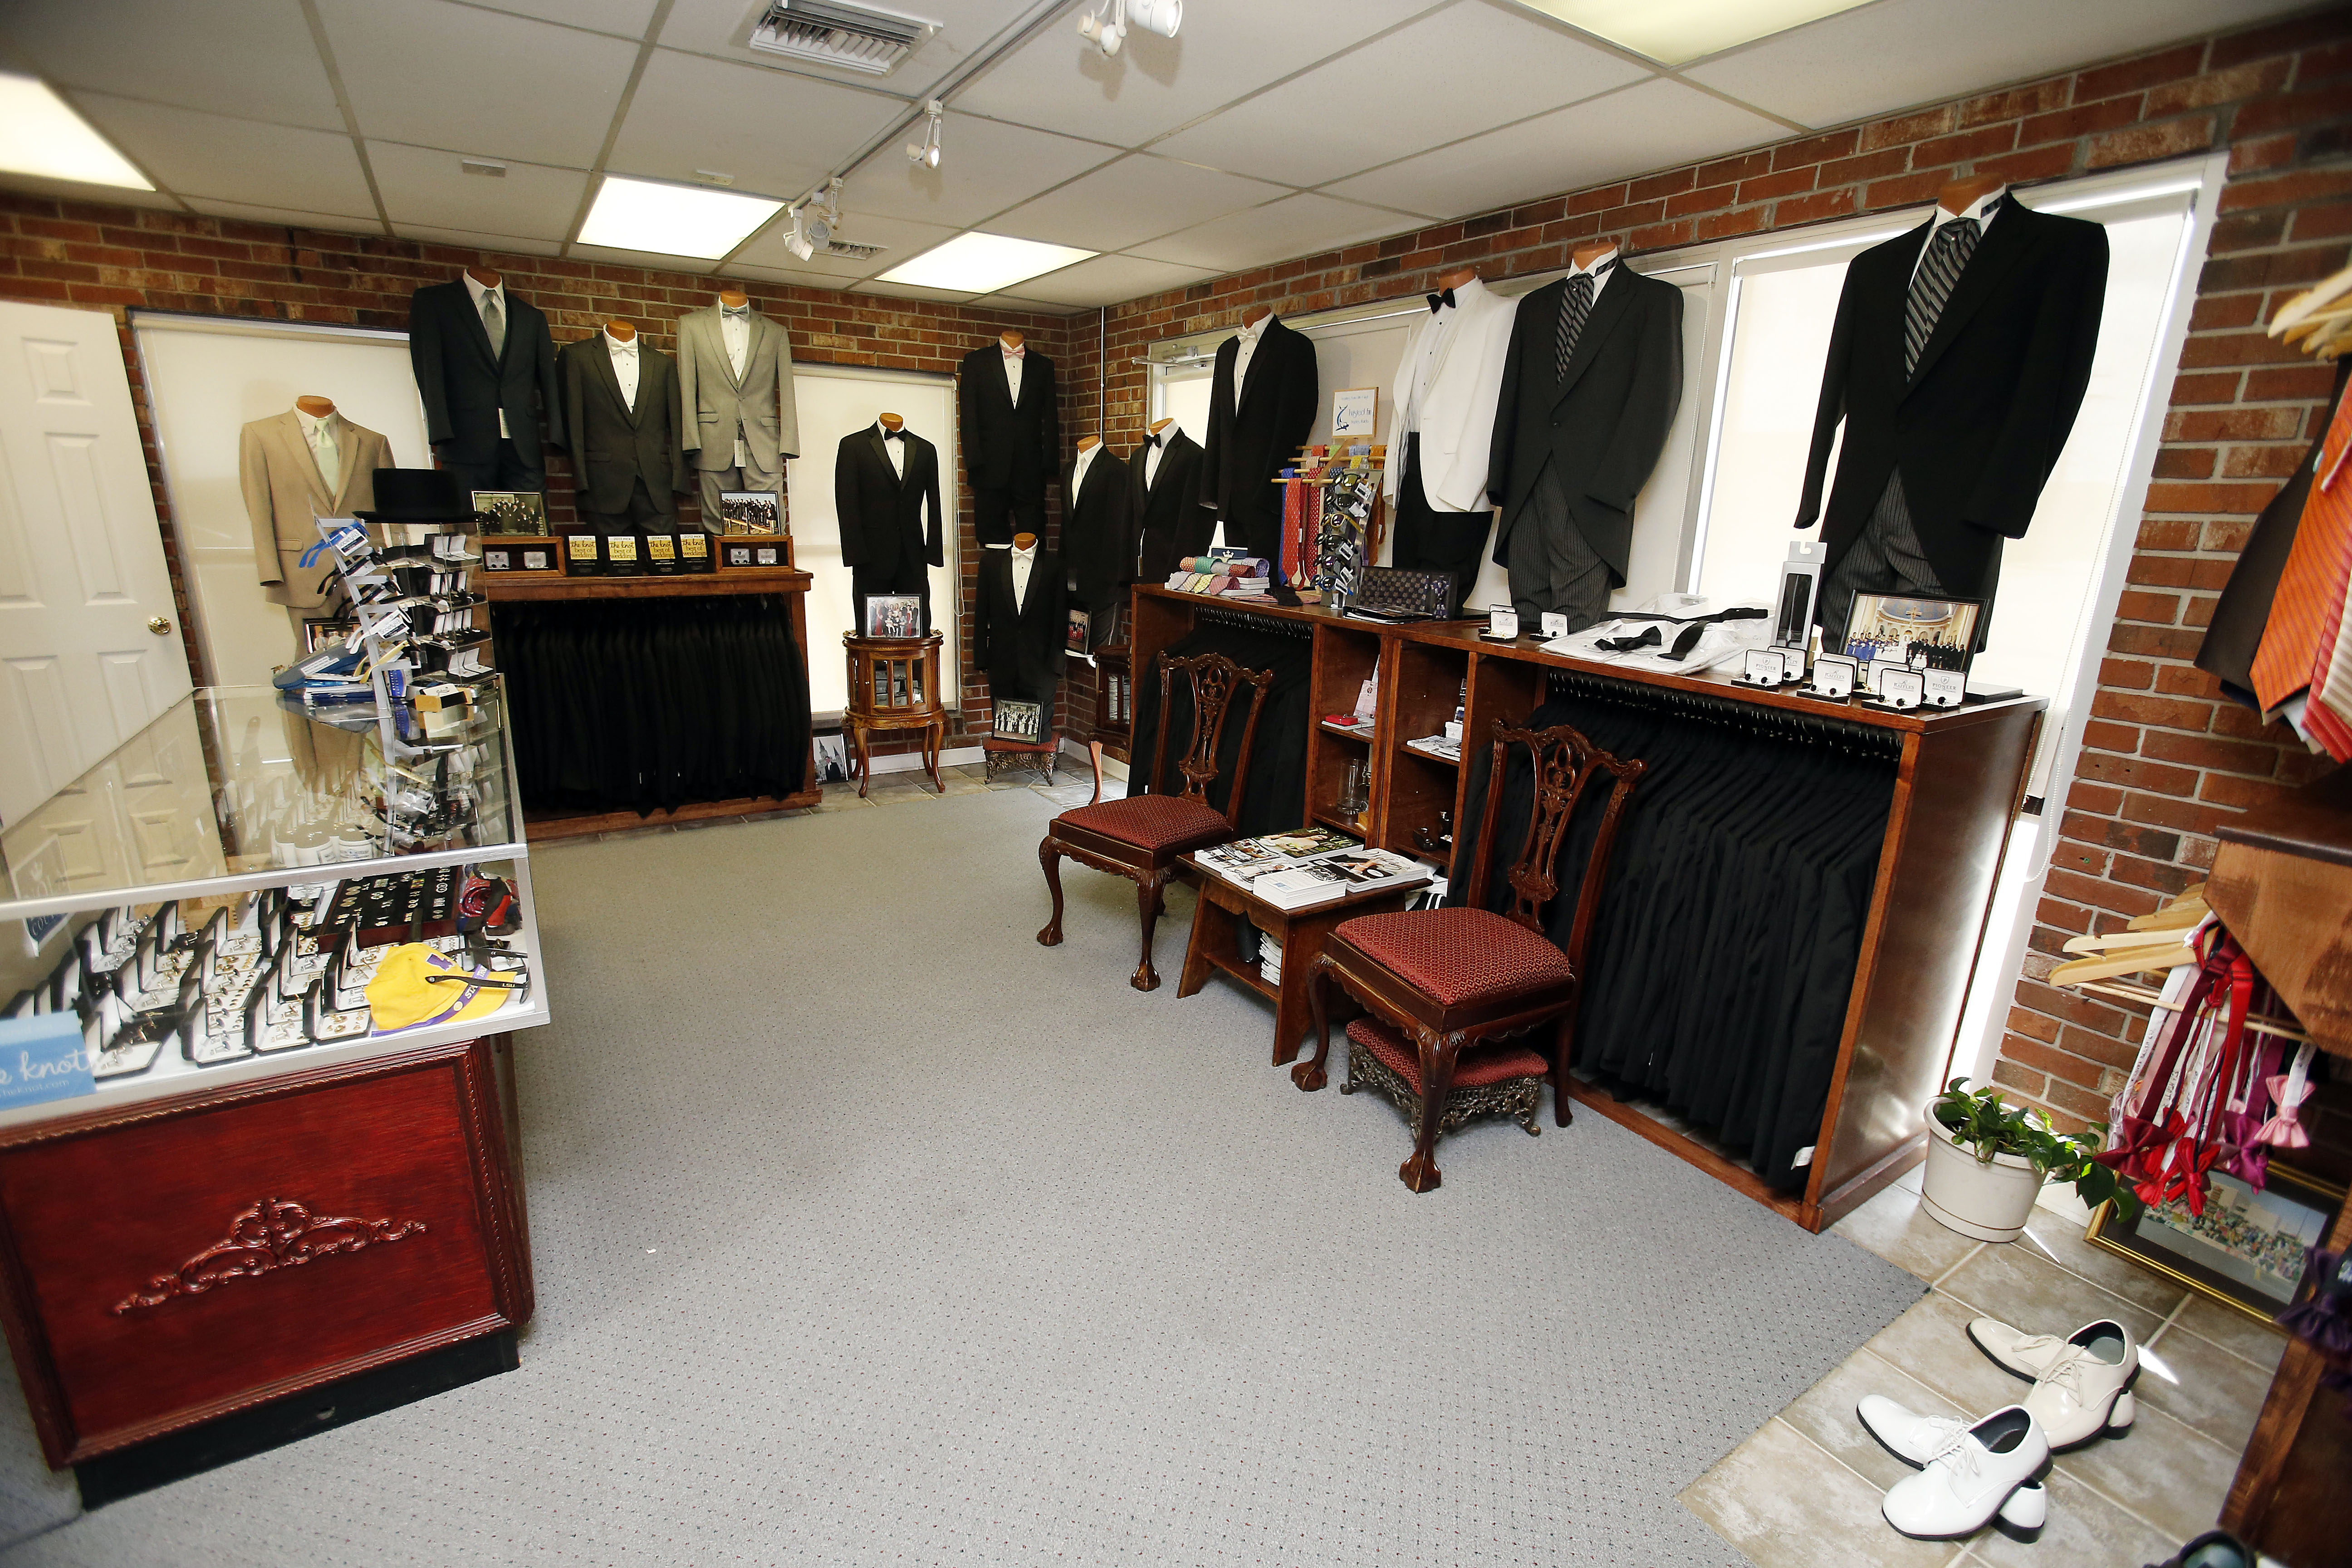 Inside of John's Tuxedos in Metairie, LA a men's clothing store and tuxedo rentals